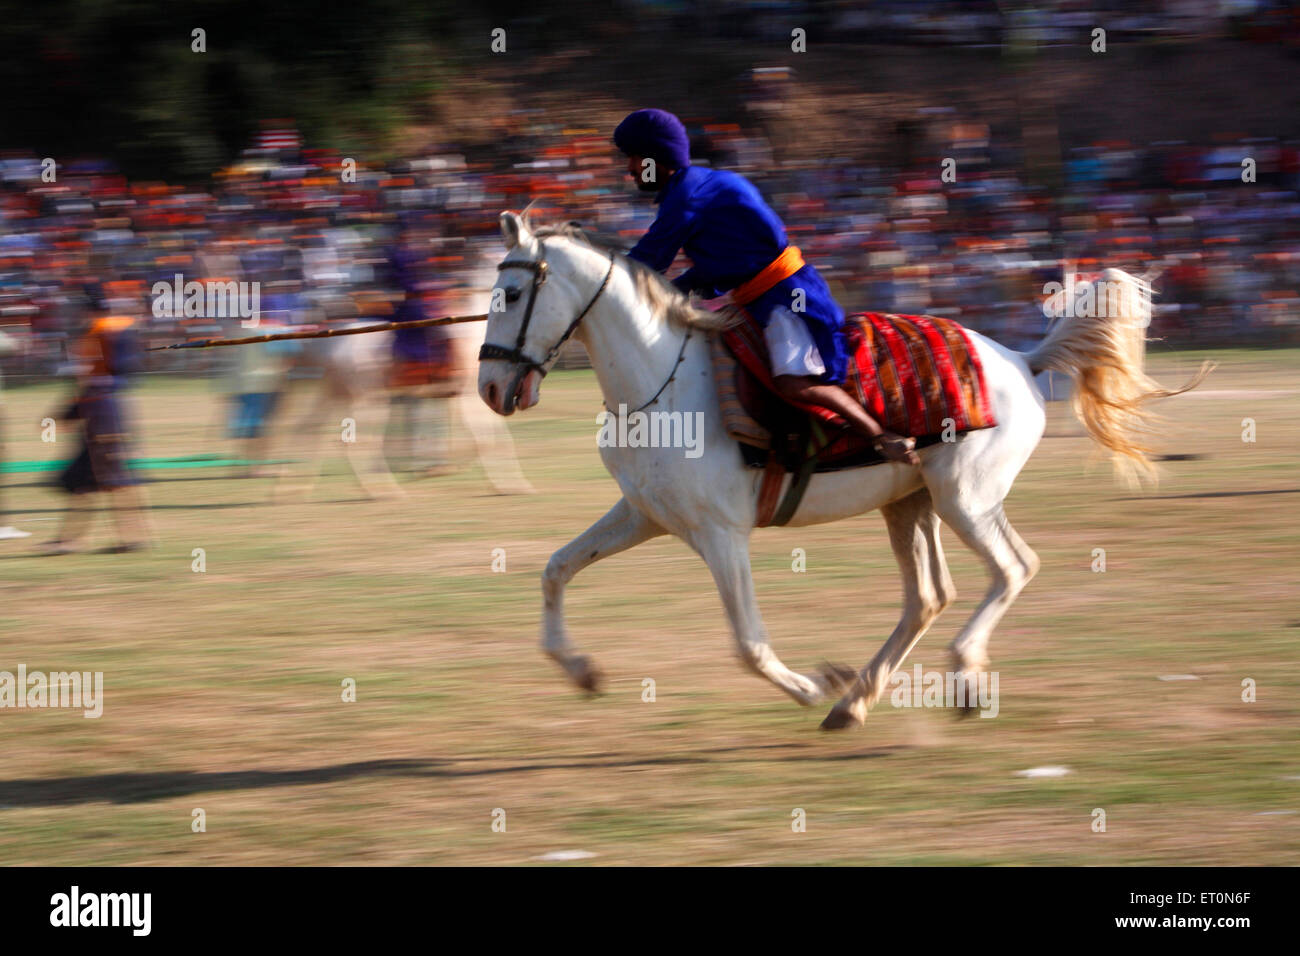 Nihang or Sikh warrior carrying spear performing stunts riding on horse during  Hola Mohalla festival at Anandpur - Stock Image